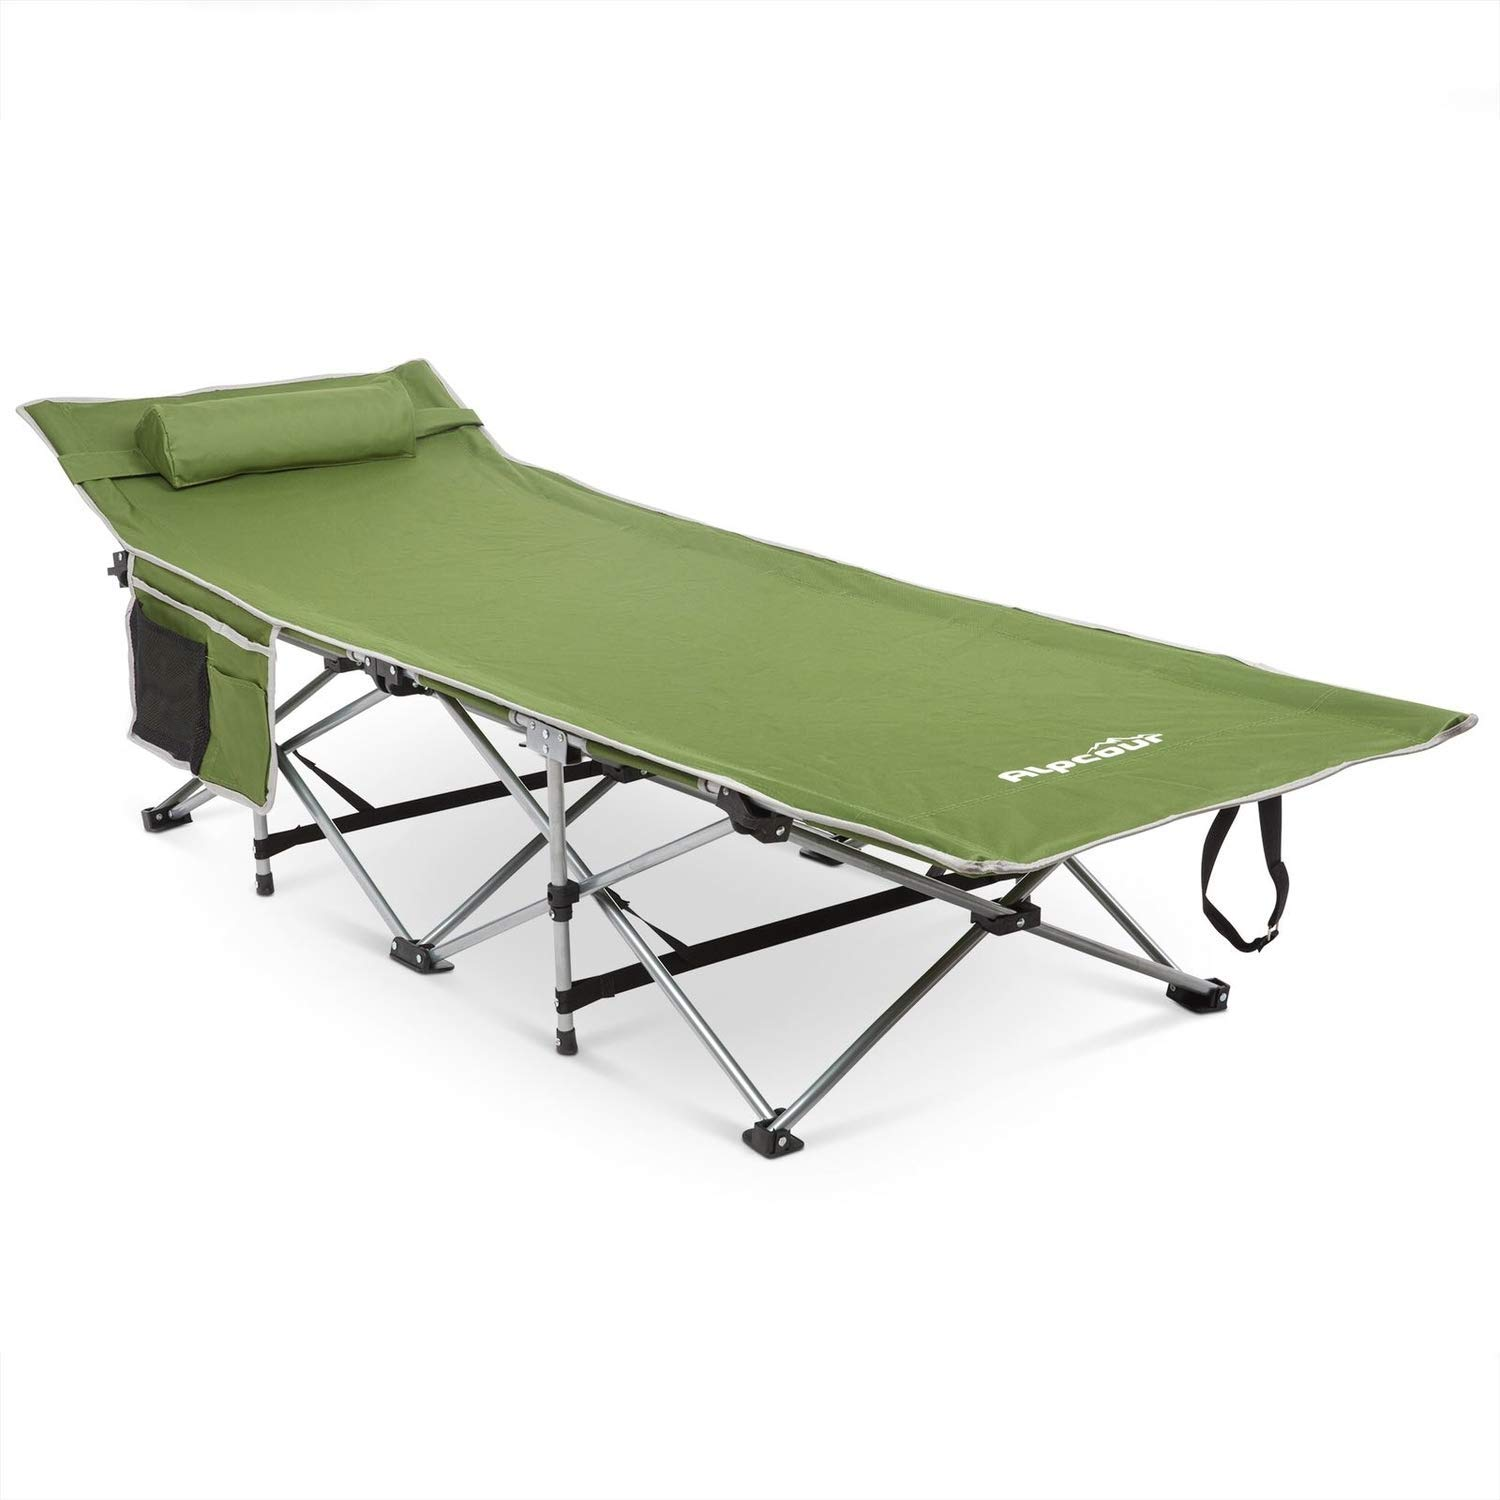 Double Layer Oxford Strong Heavy Duty Wide Sleeping Cots for Camp Office Use REDCAMP Folding Camping Cots for Adults 500lbs Portable with Carry Bag